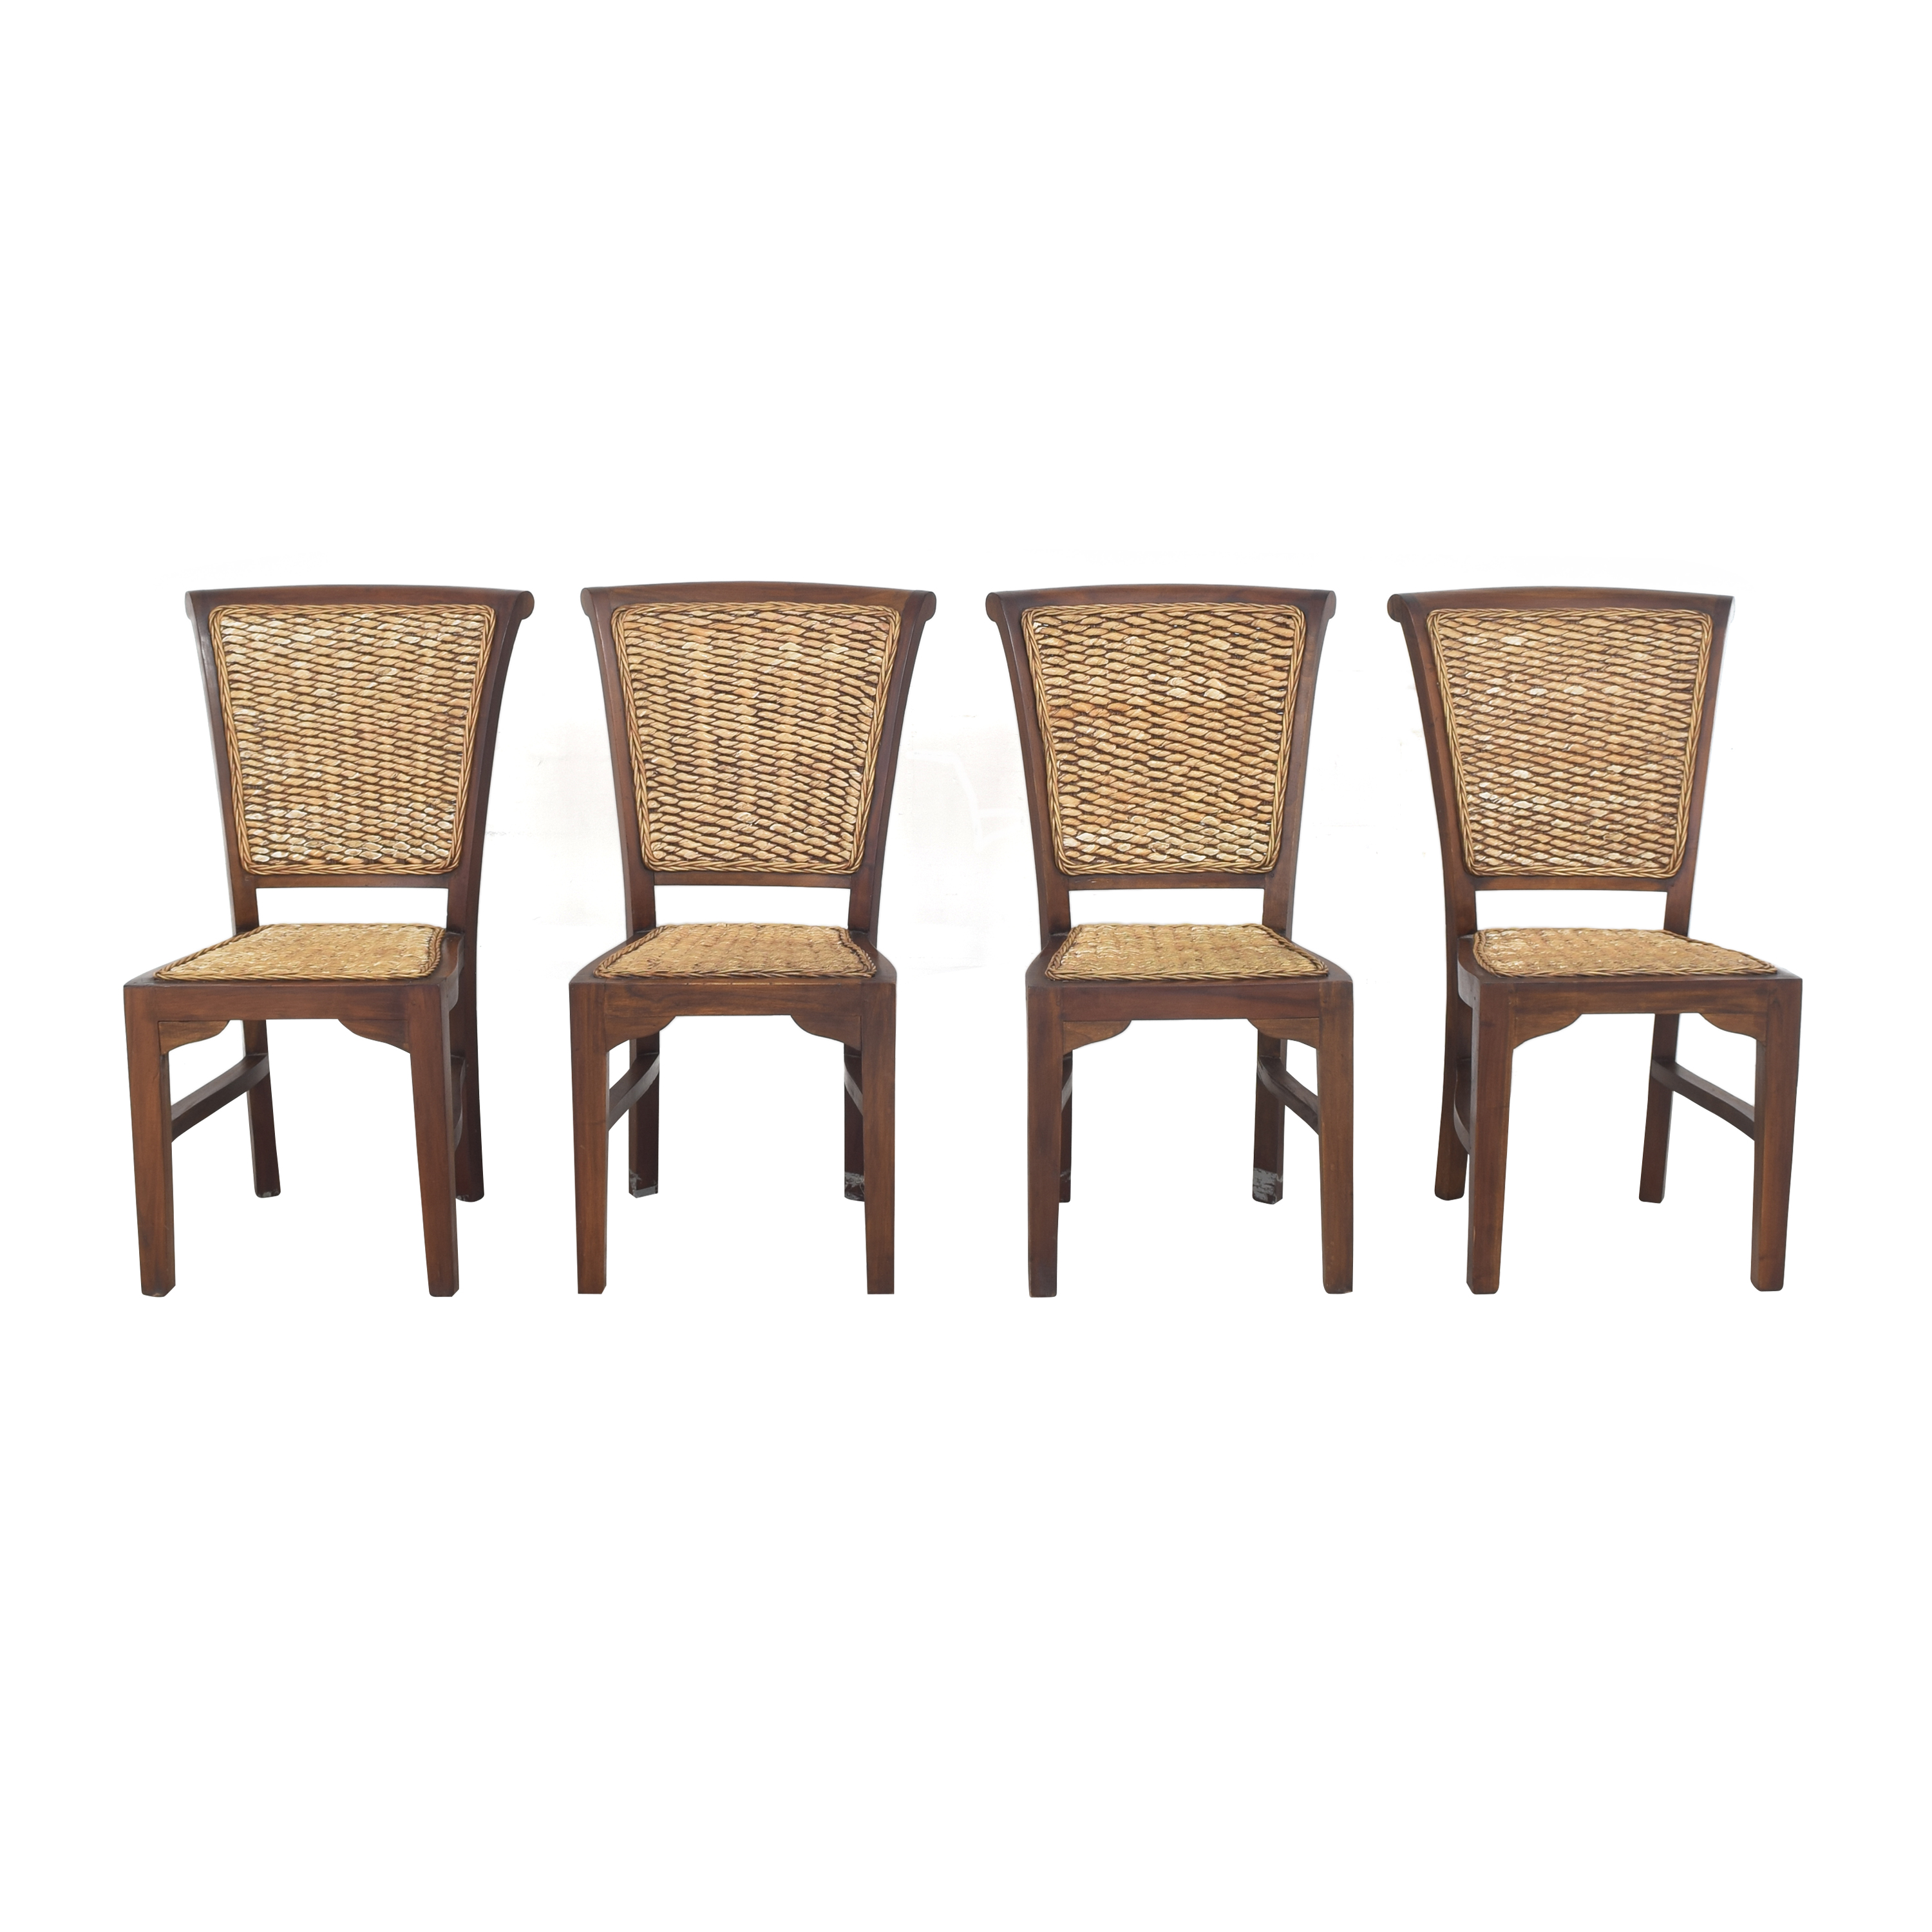 ABC Carpet & Home ABC Carpet & Home Woven Dining Chairs pa